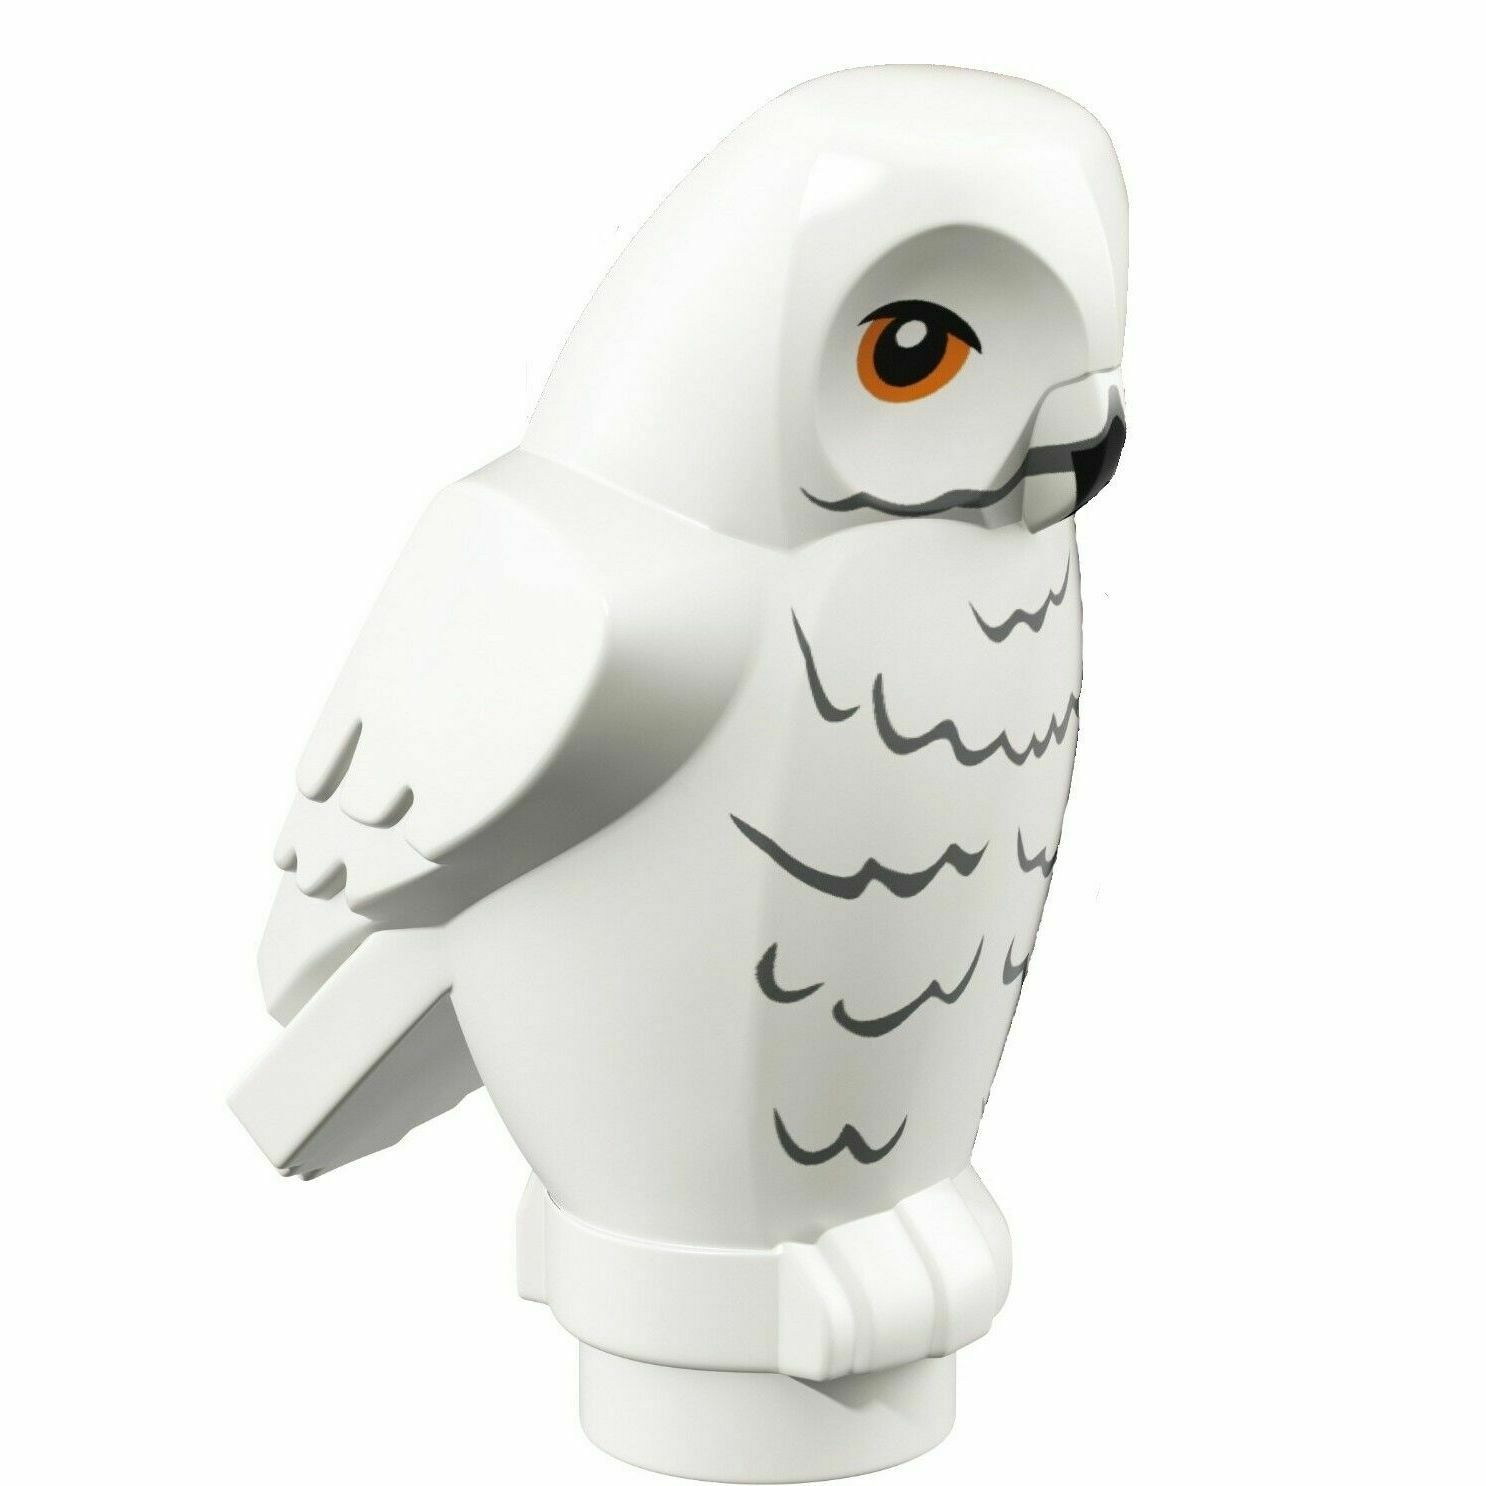 LEGO Harry Potter Hedwig Errol Bird Animals Set of 3 White Brown Gray Owls